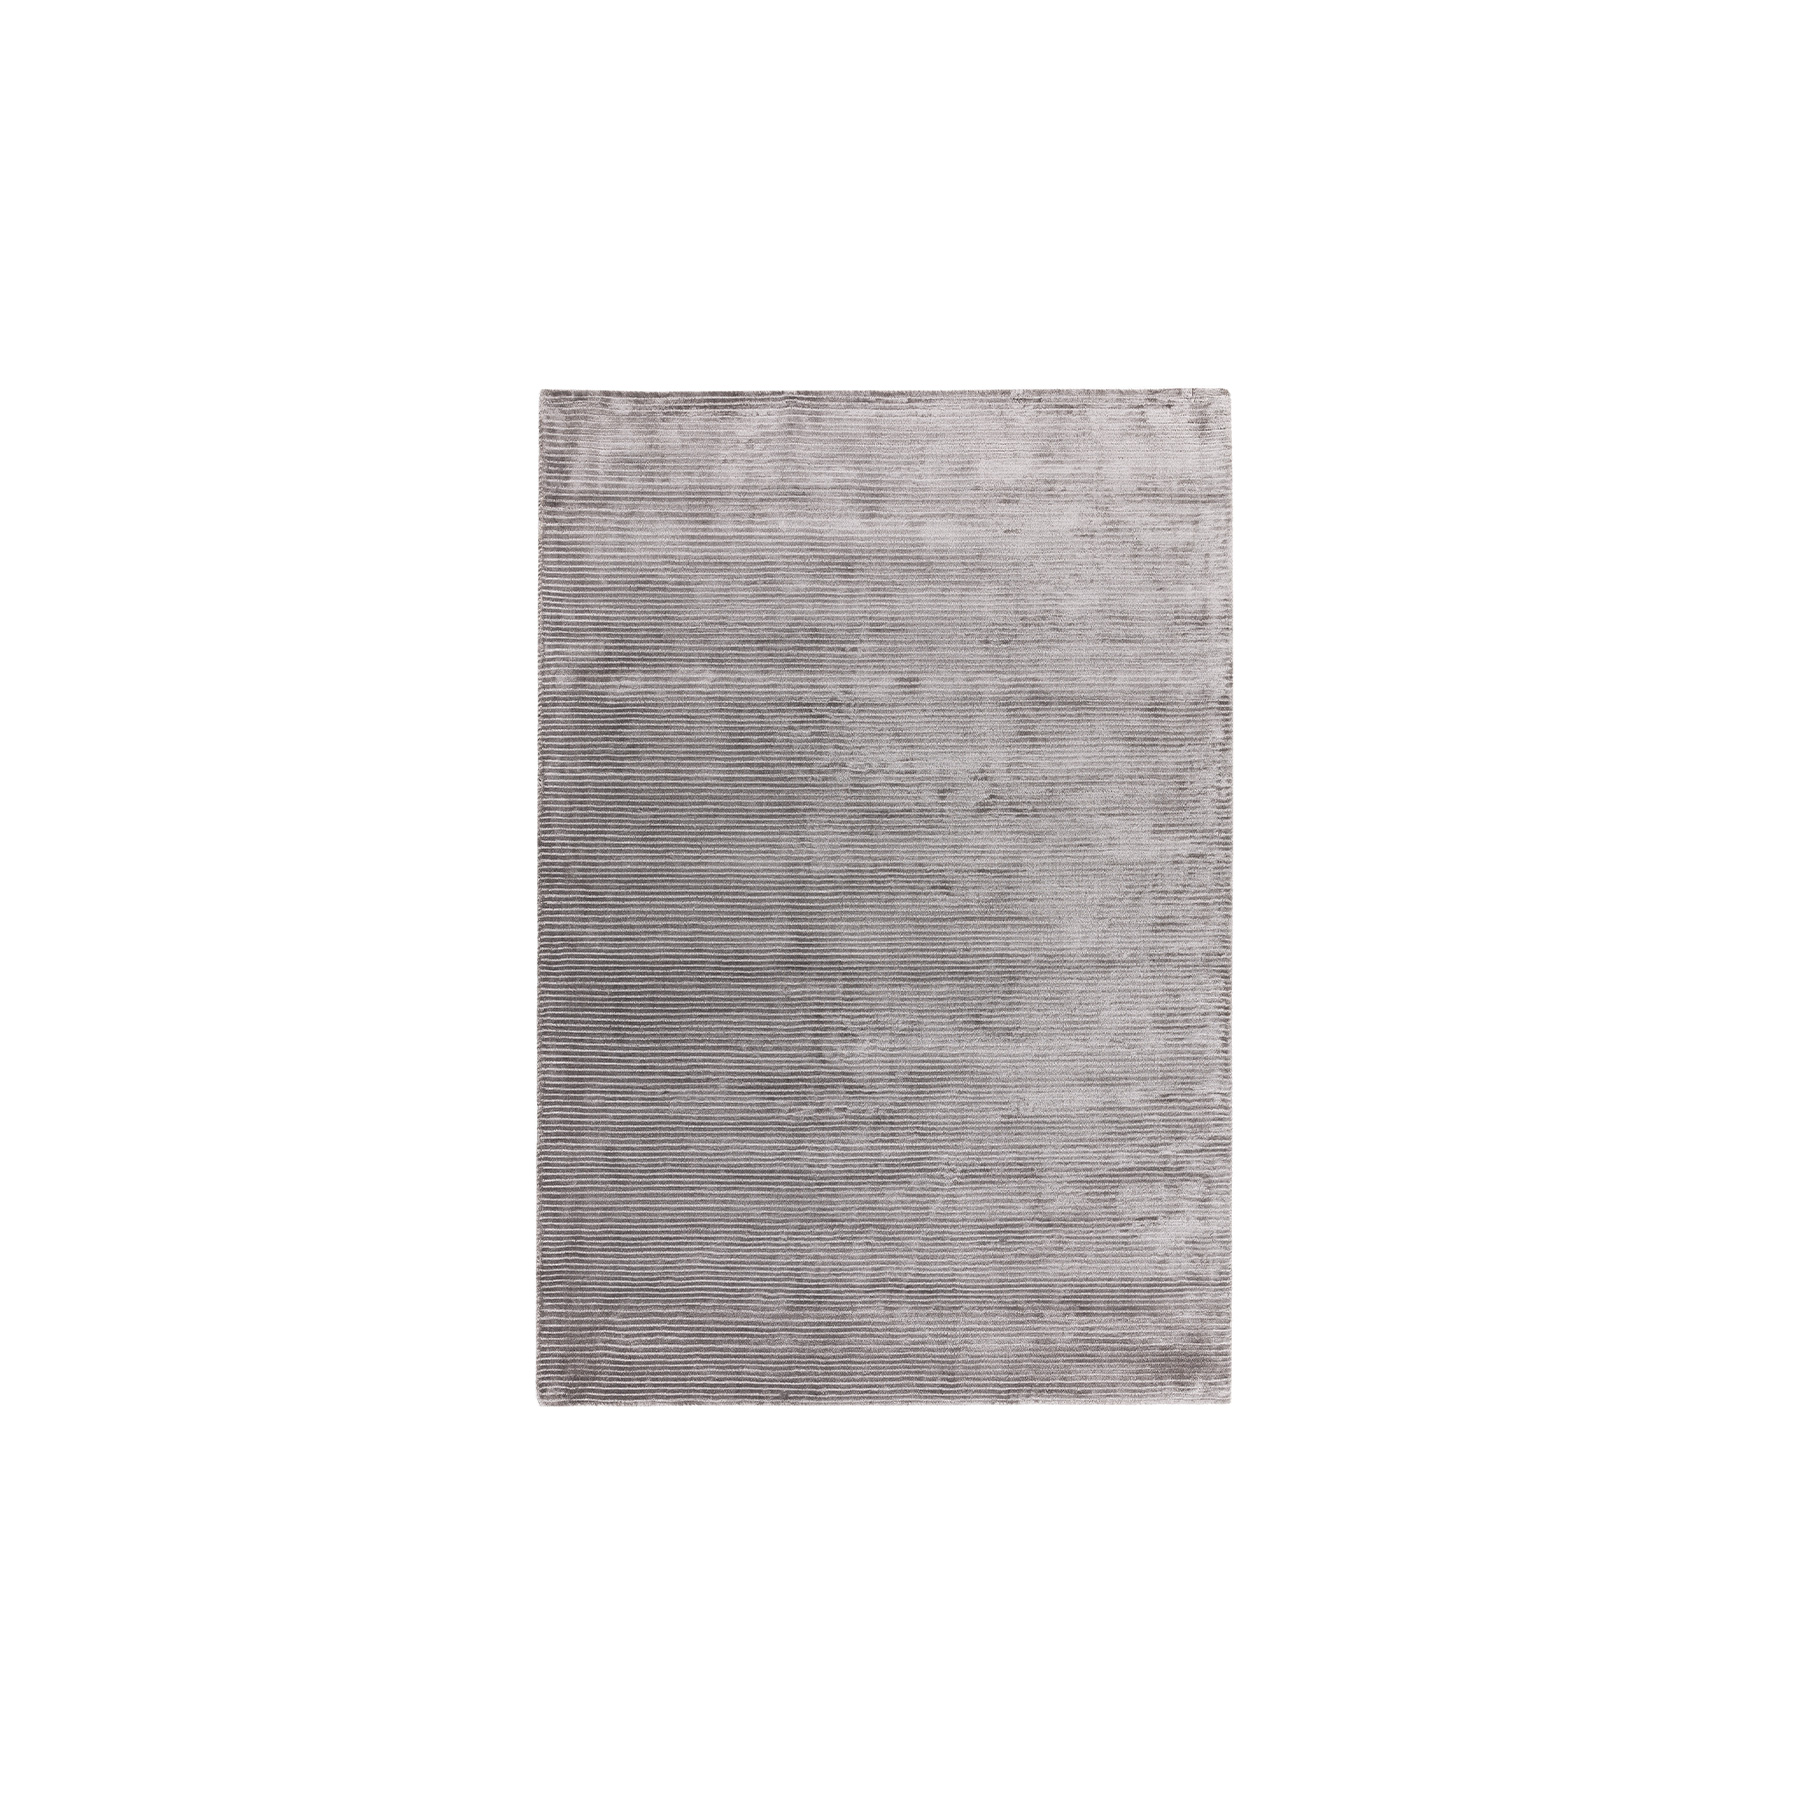 Bellagio Silver Rug - The Contemporary Plains Collection of plain rugs feature a largely neutral and natural palette of greys and creams with modern fashionable contrast tones added throughout. The use of clean lines and complementary borders adds visual interest whilst maintaining the contemporary ethos. The Bellagio rugs are Hand-woven viscose with loop stripe detail. Available in different sizes.  | Matter of Stuff